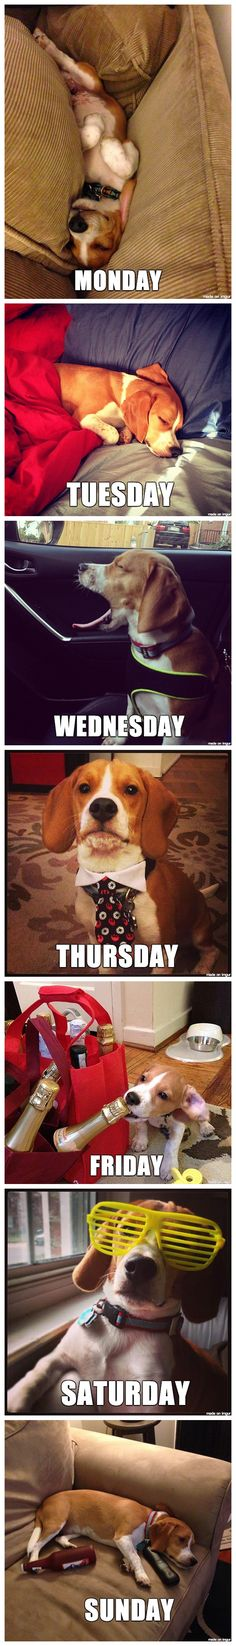 Week of the Beagle, or my week minus the champagne and Kanye glasses.